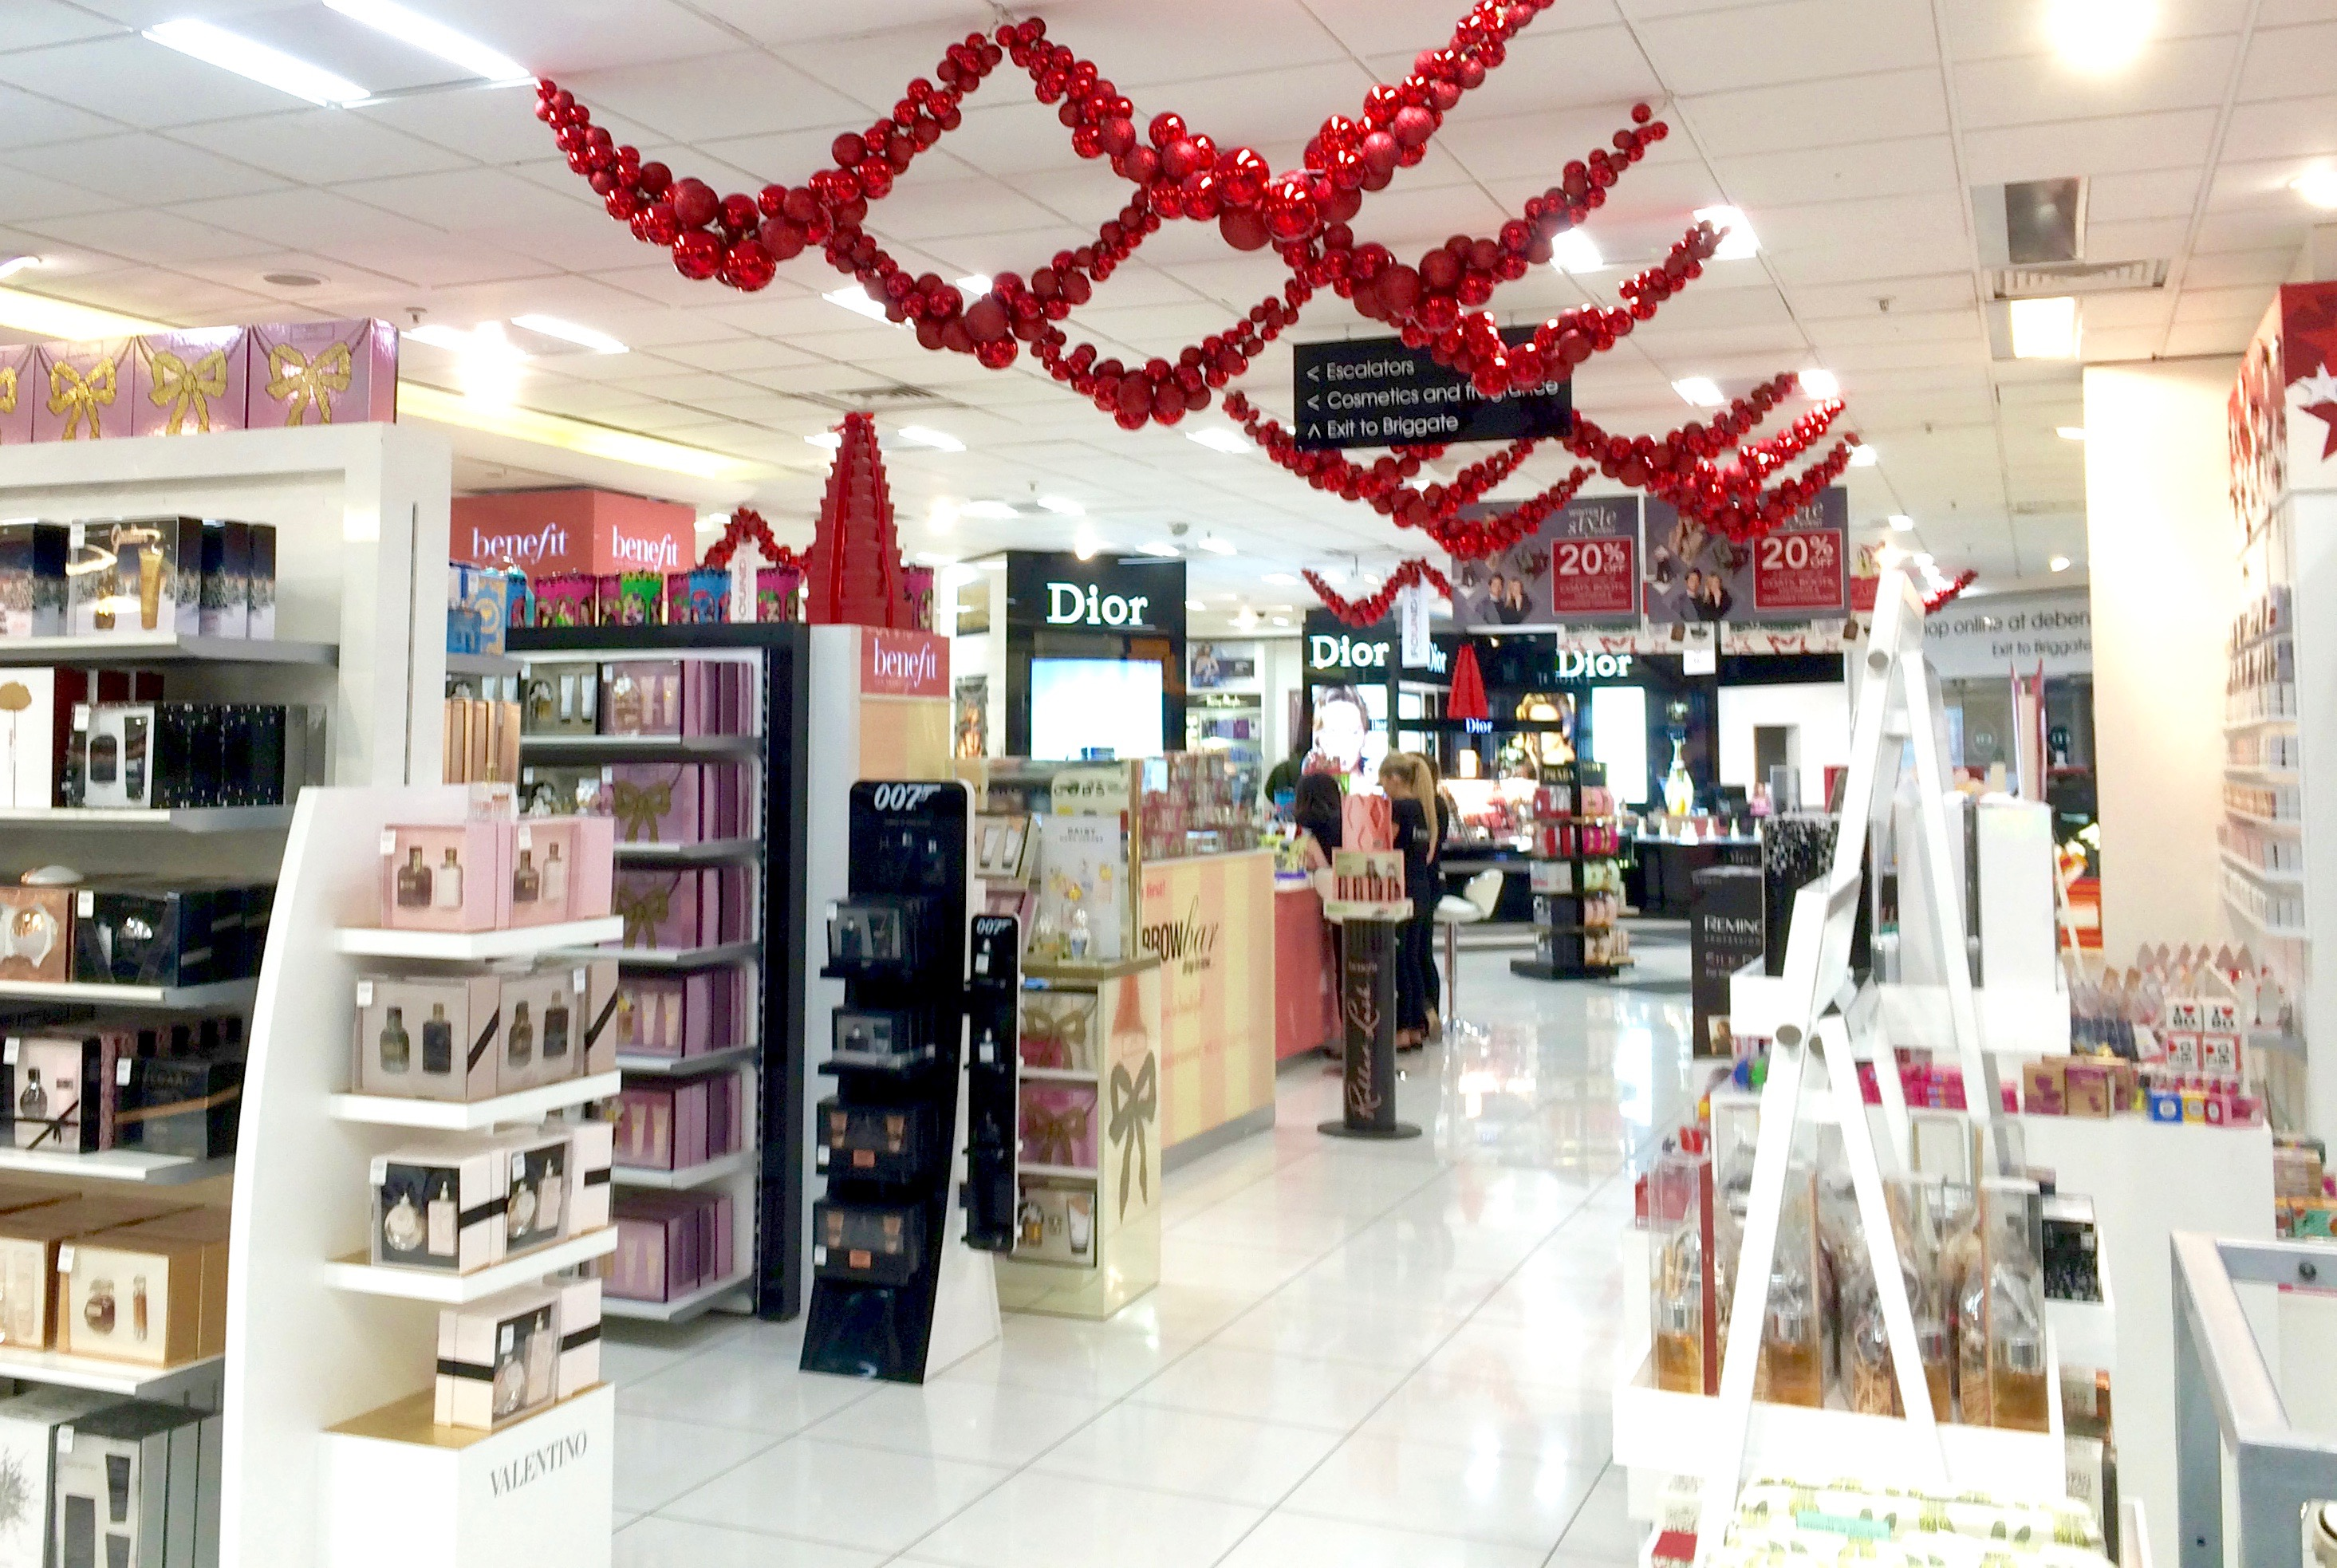 A Quick Visit To Debenhams In Leeds For Some Christmas